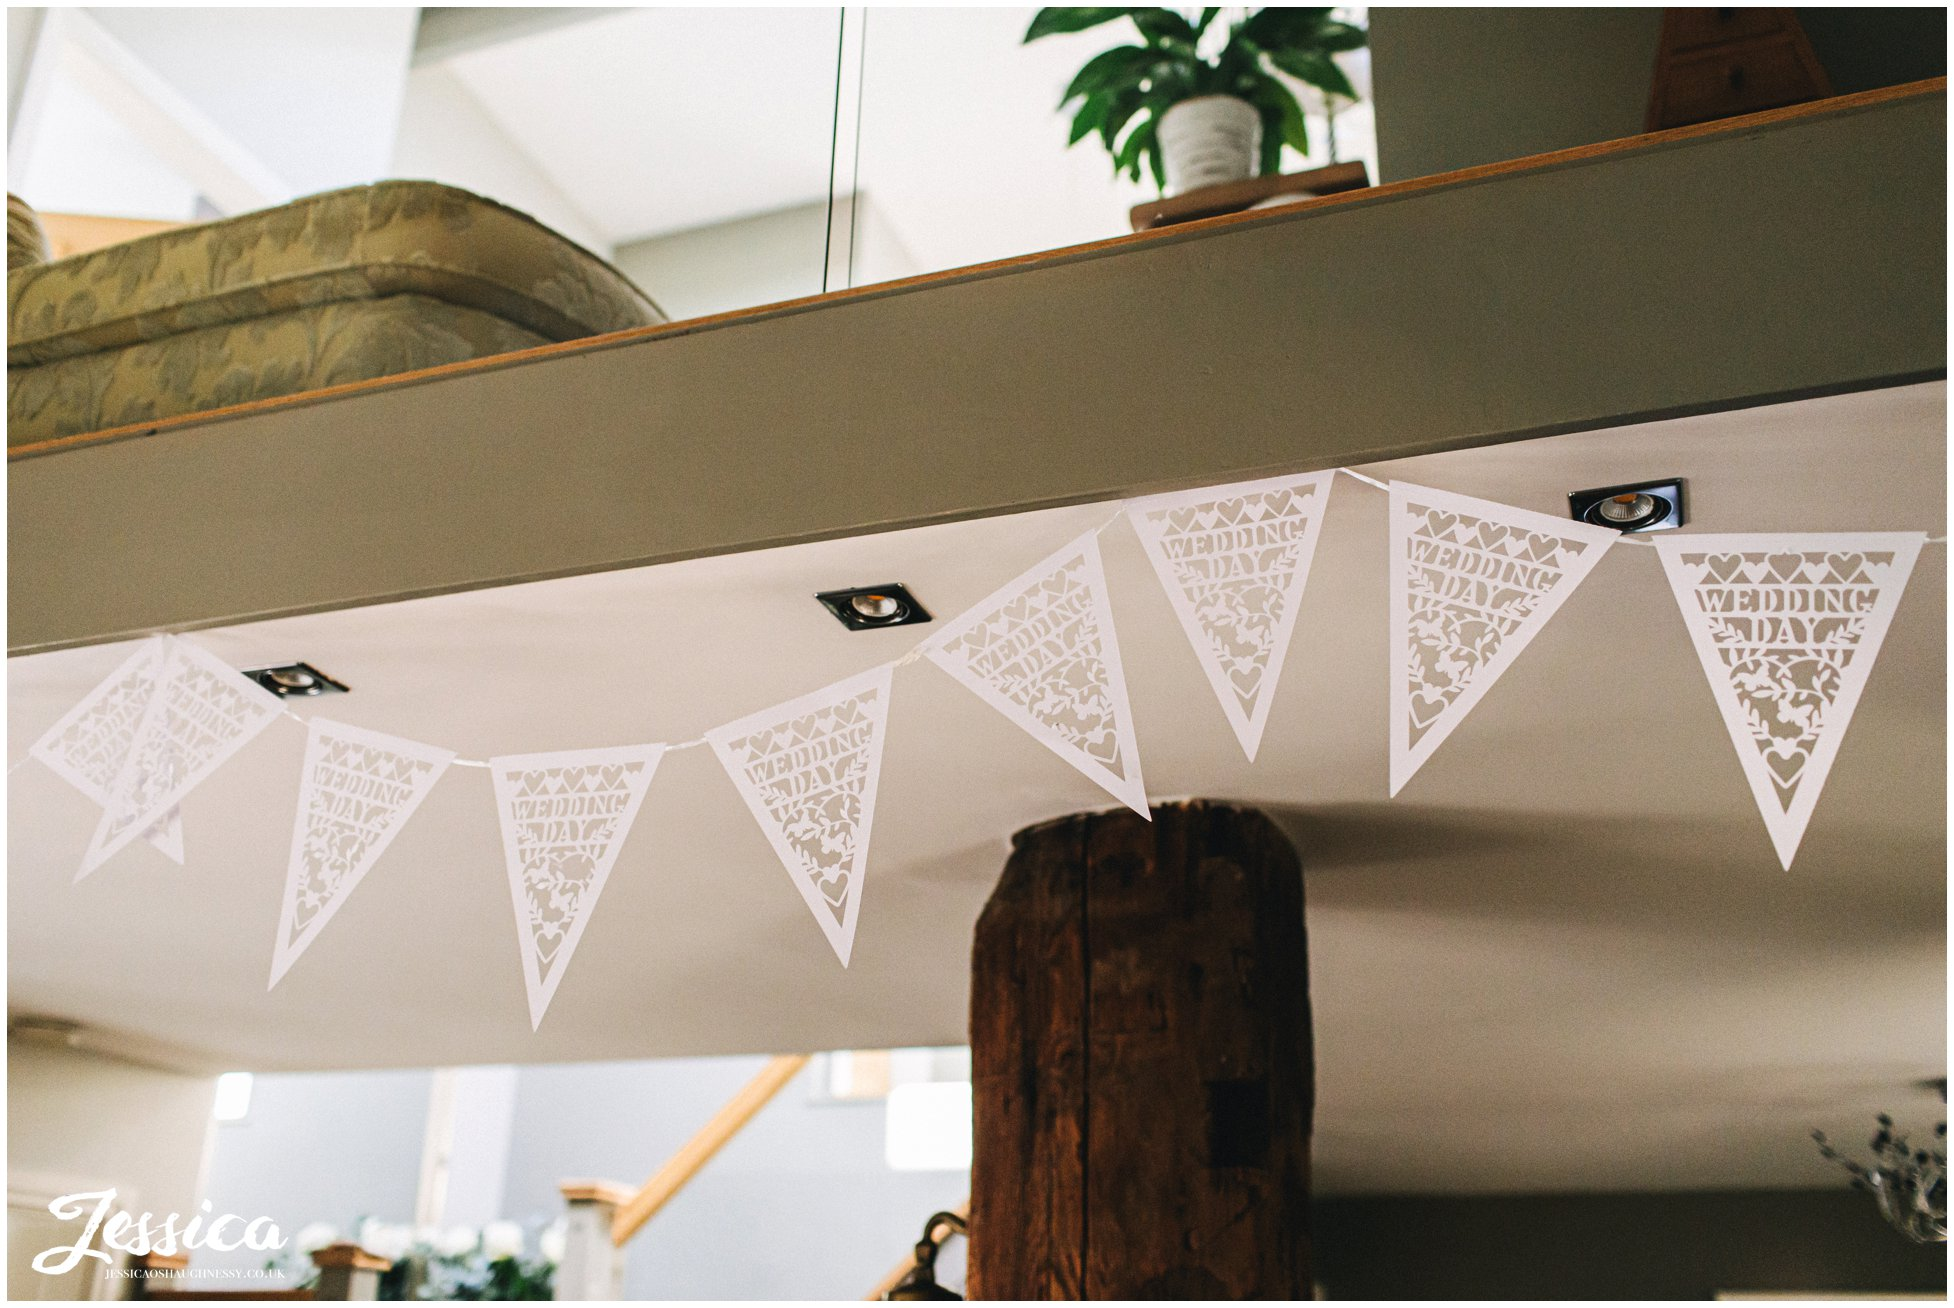 Wedding Day bunting decorates brides home